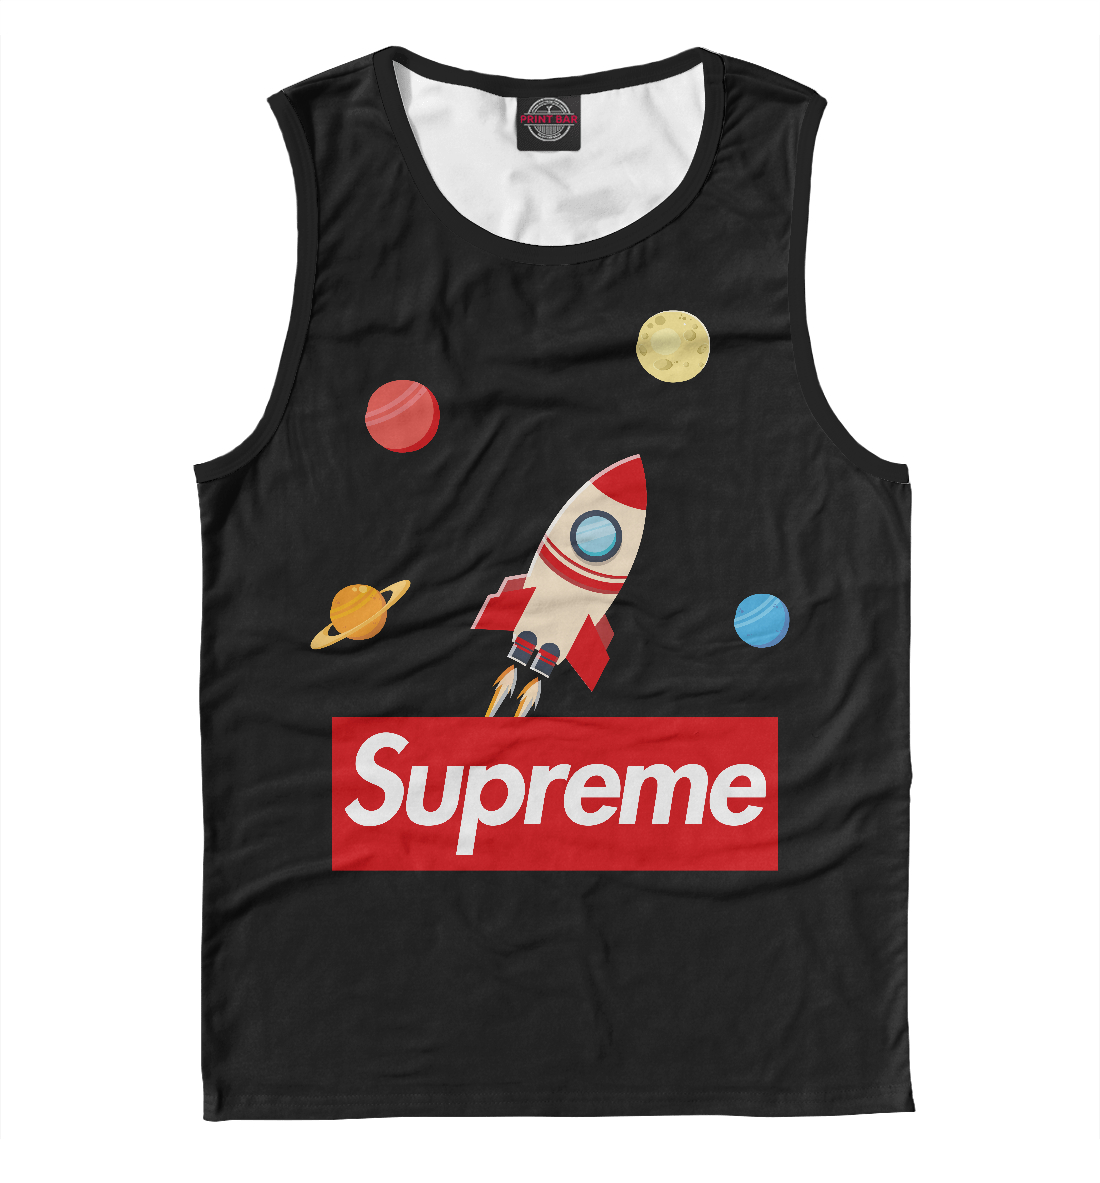 Купить Supreme Space, Printbar, Майки, SPR-917854-may-2